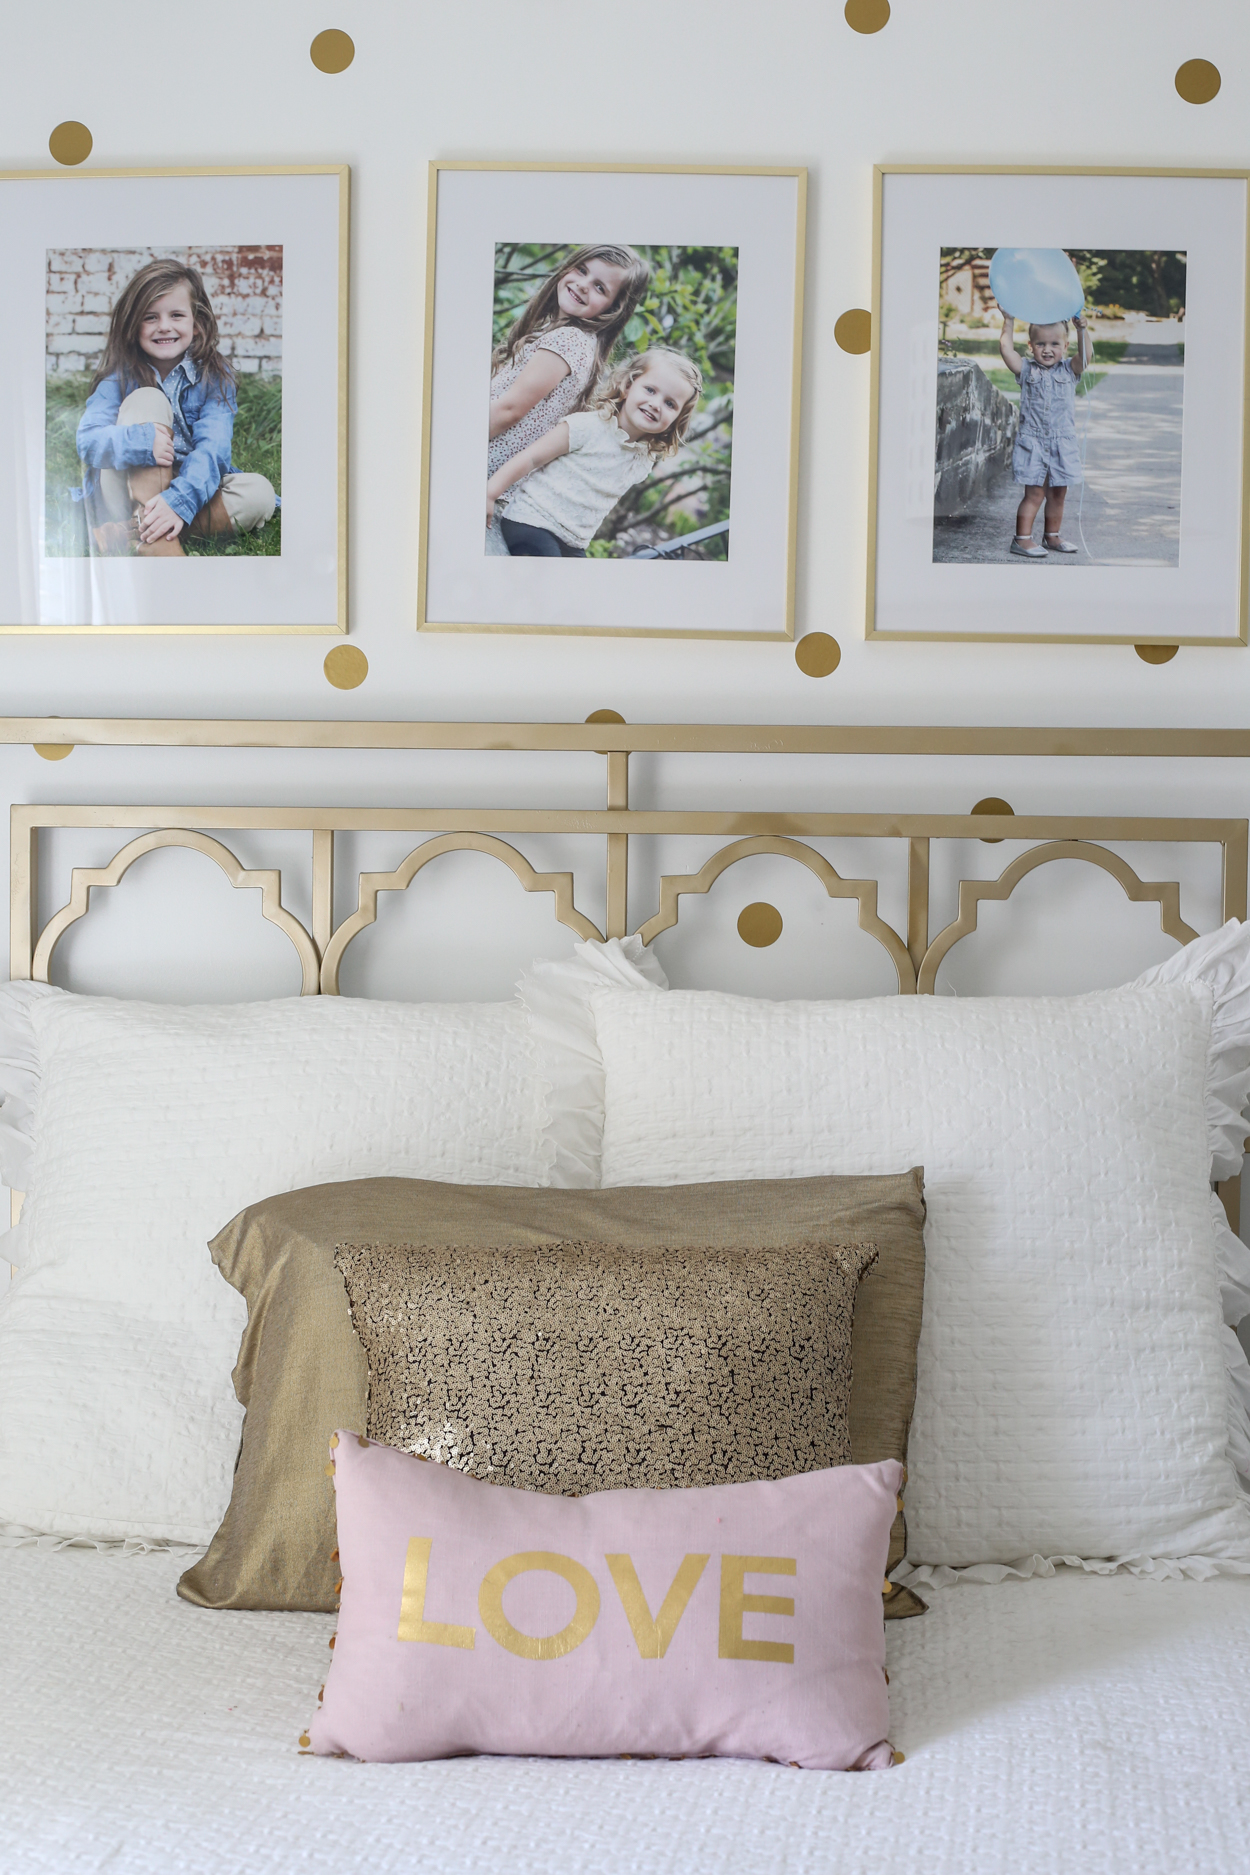 Bed frame with white pillows with three golden framed pictures.